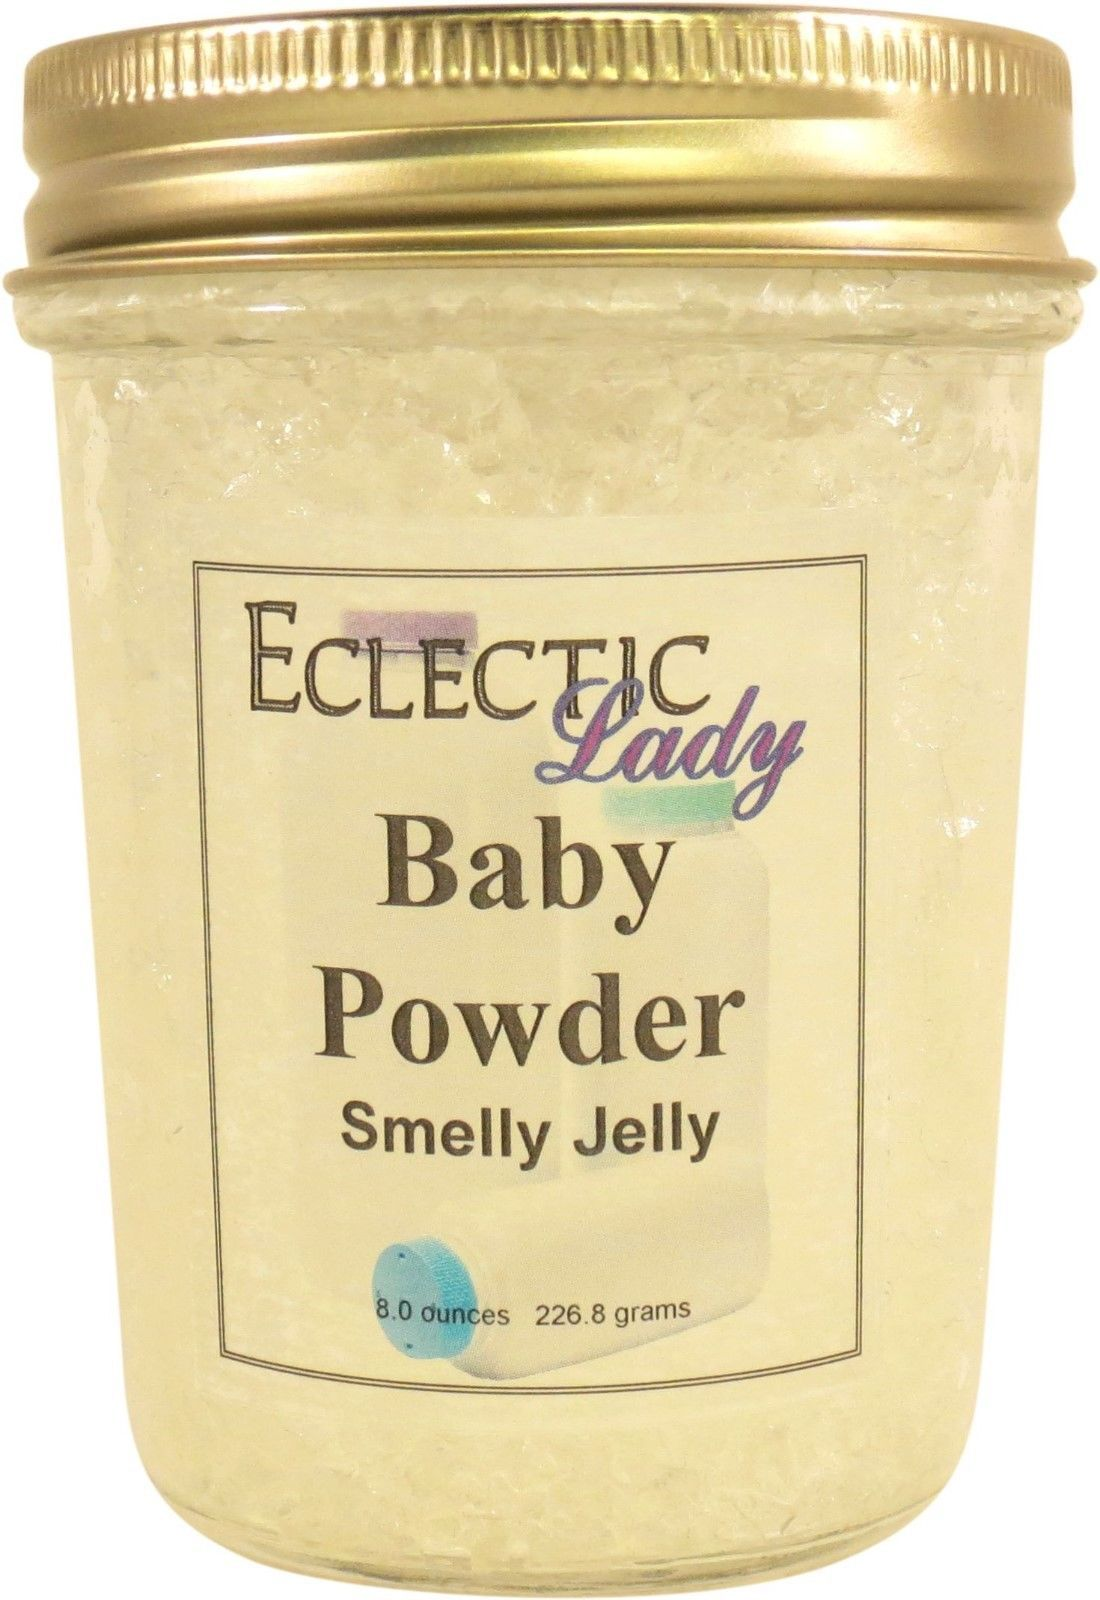 Baby Powder Smelly Jelly, Room Air Freshener, 8 oz